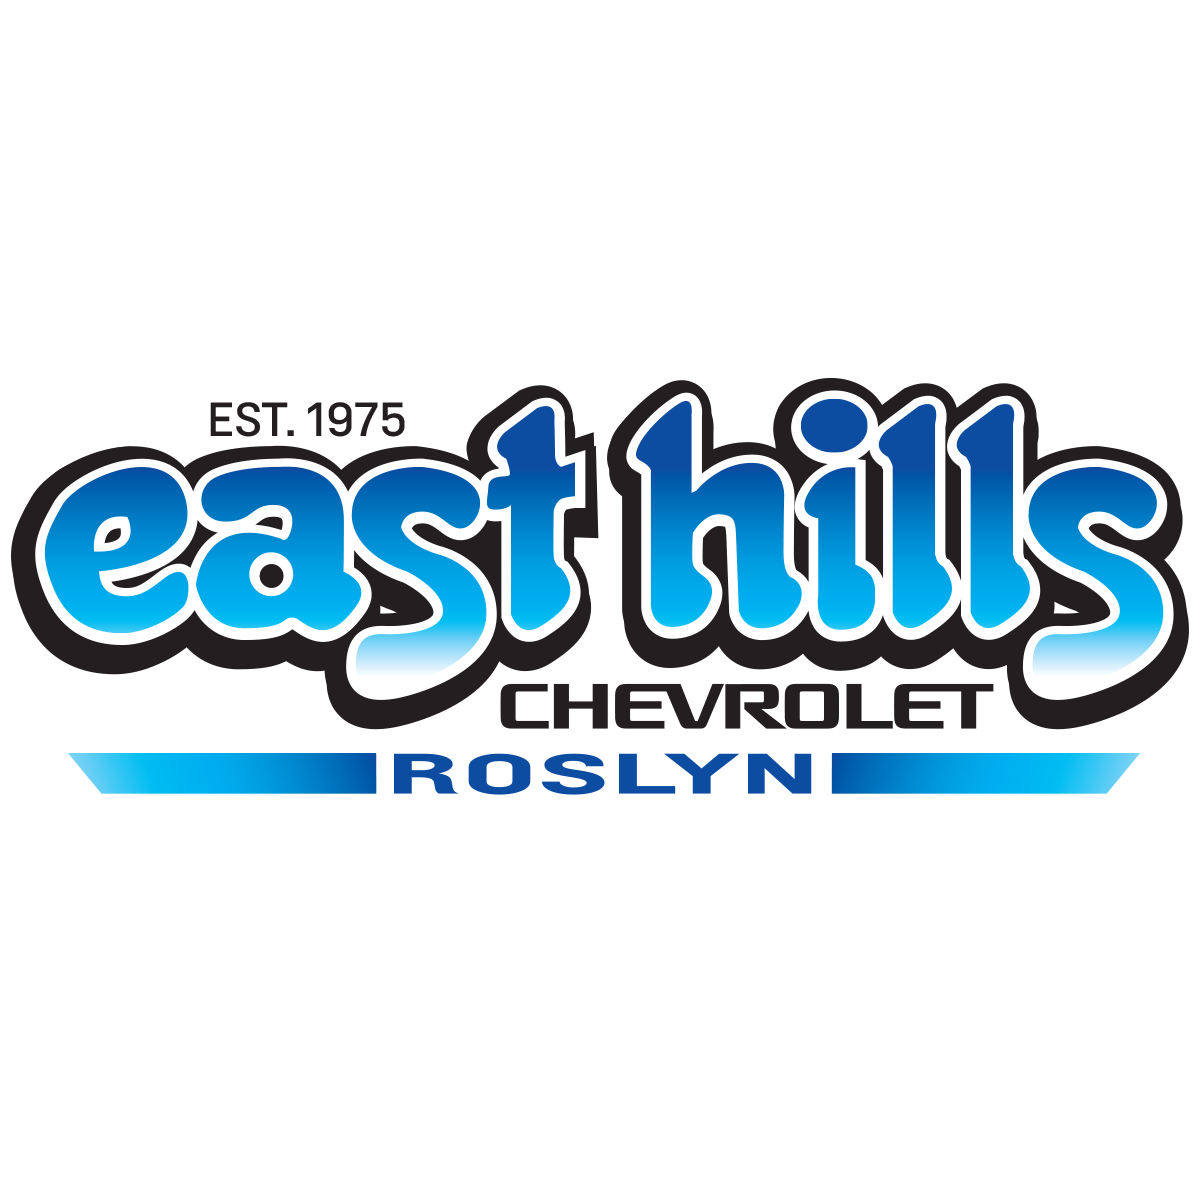 East Hills Chevrolet of Roslyn